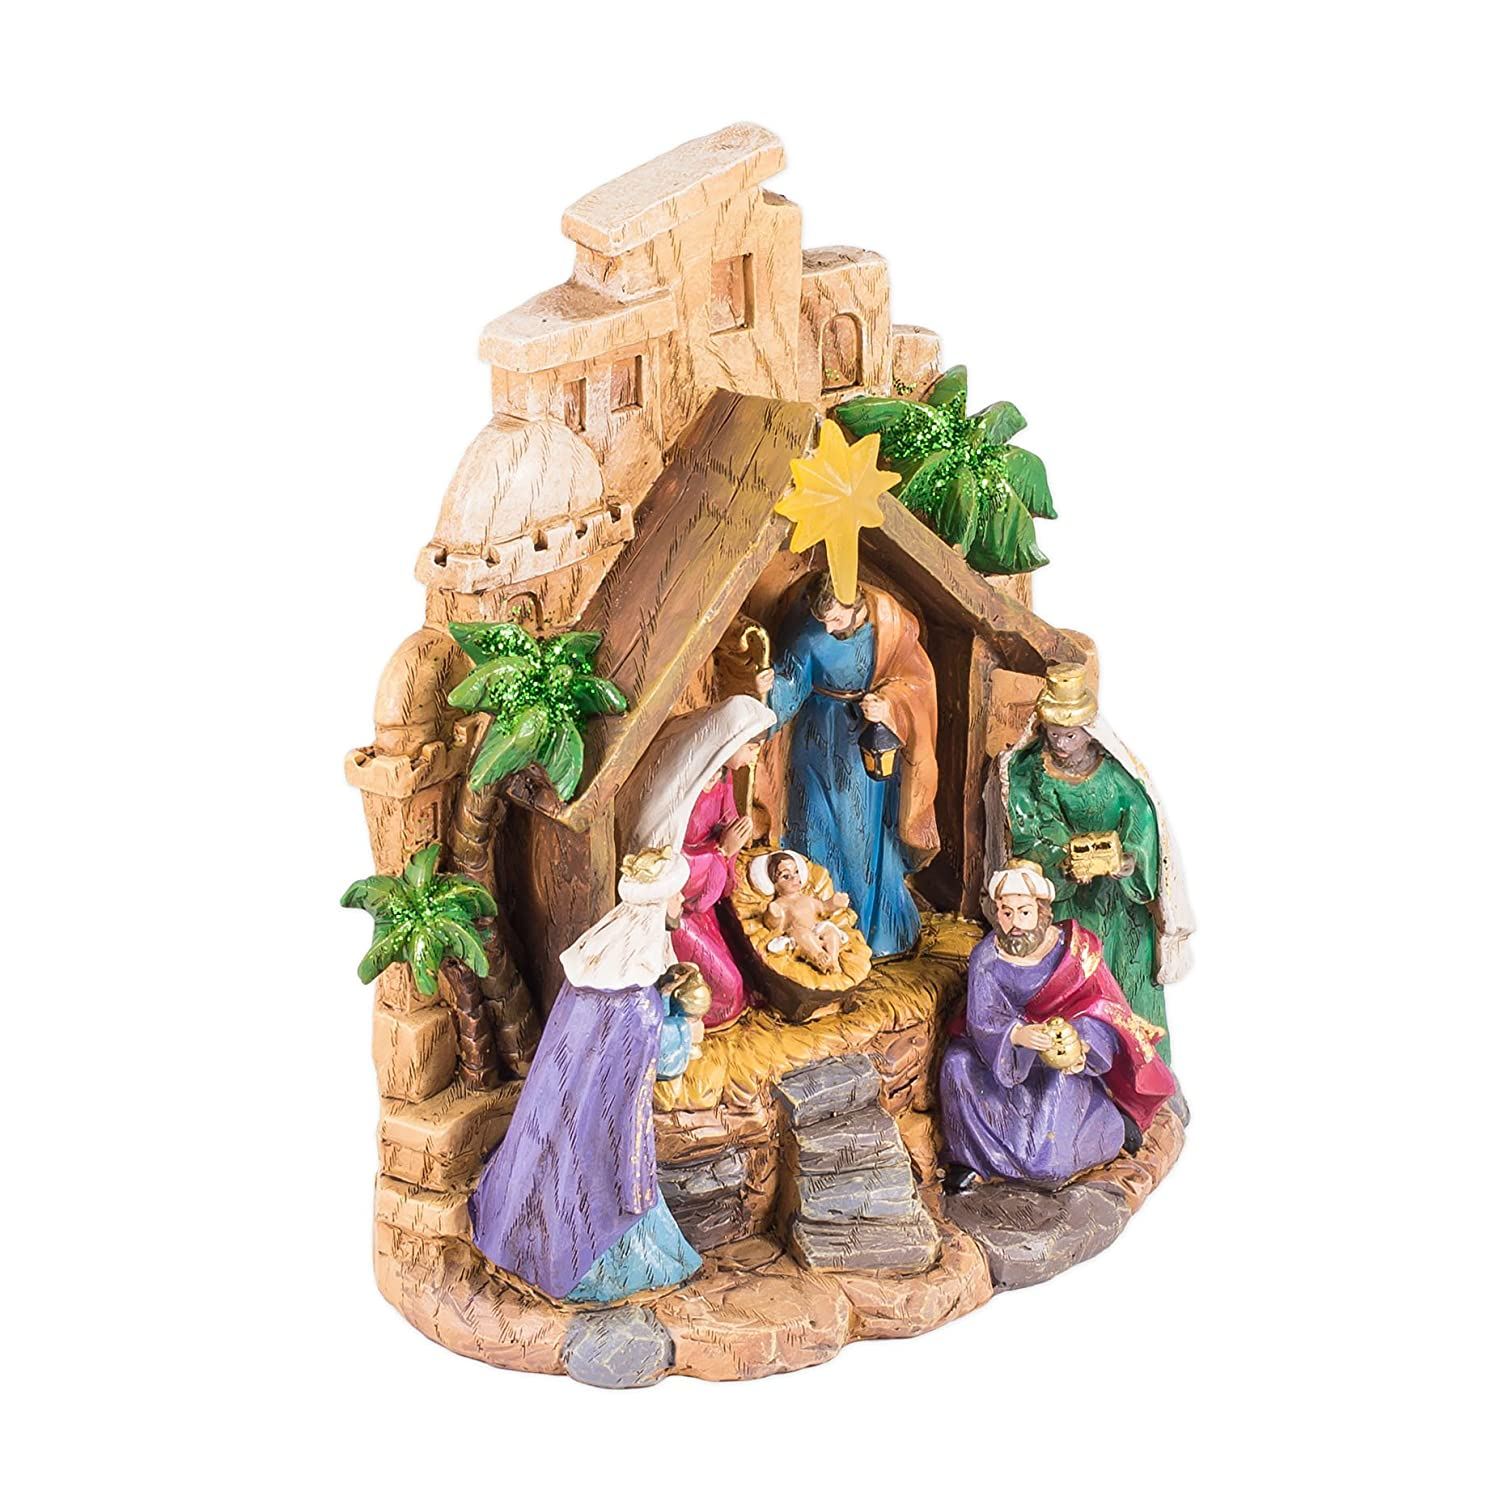 8 Christmas Nativity Resin Stone Figurine with Light Up LED Star